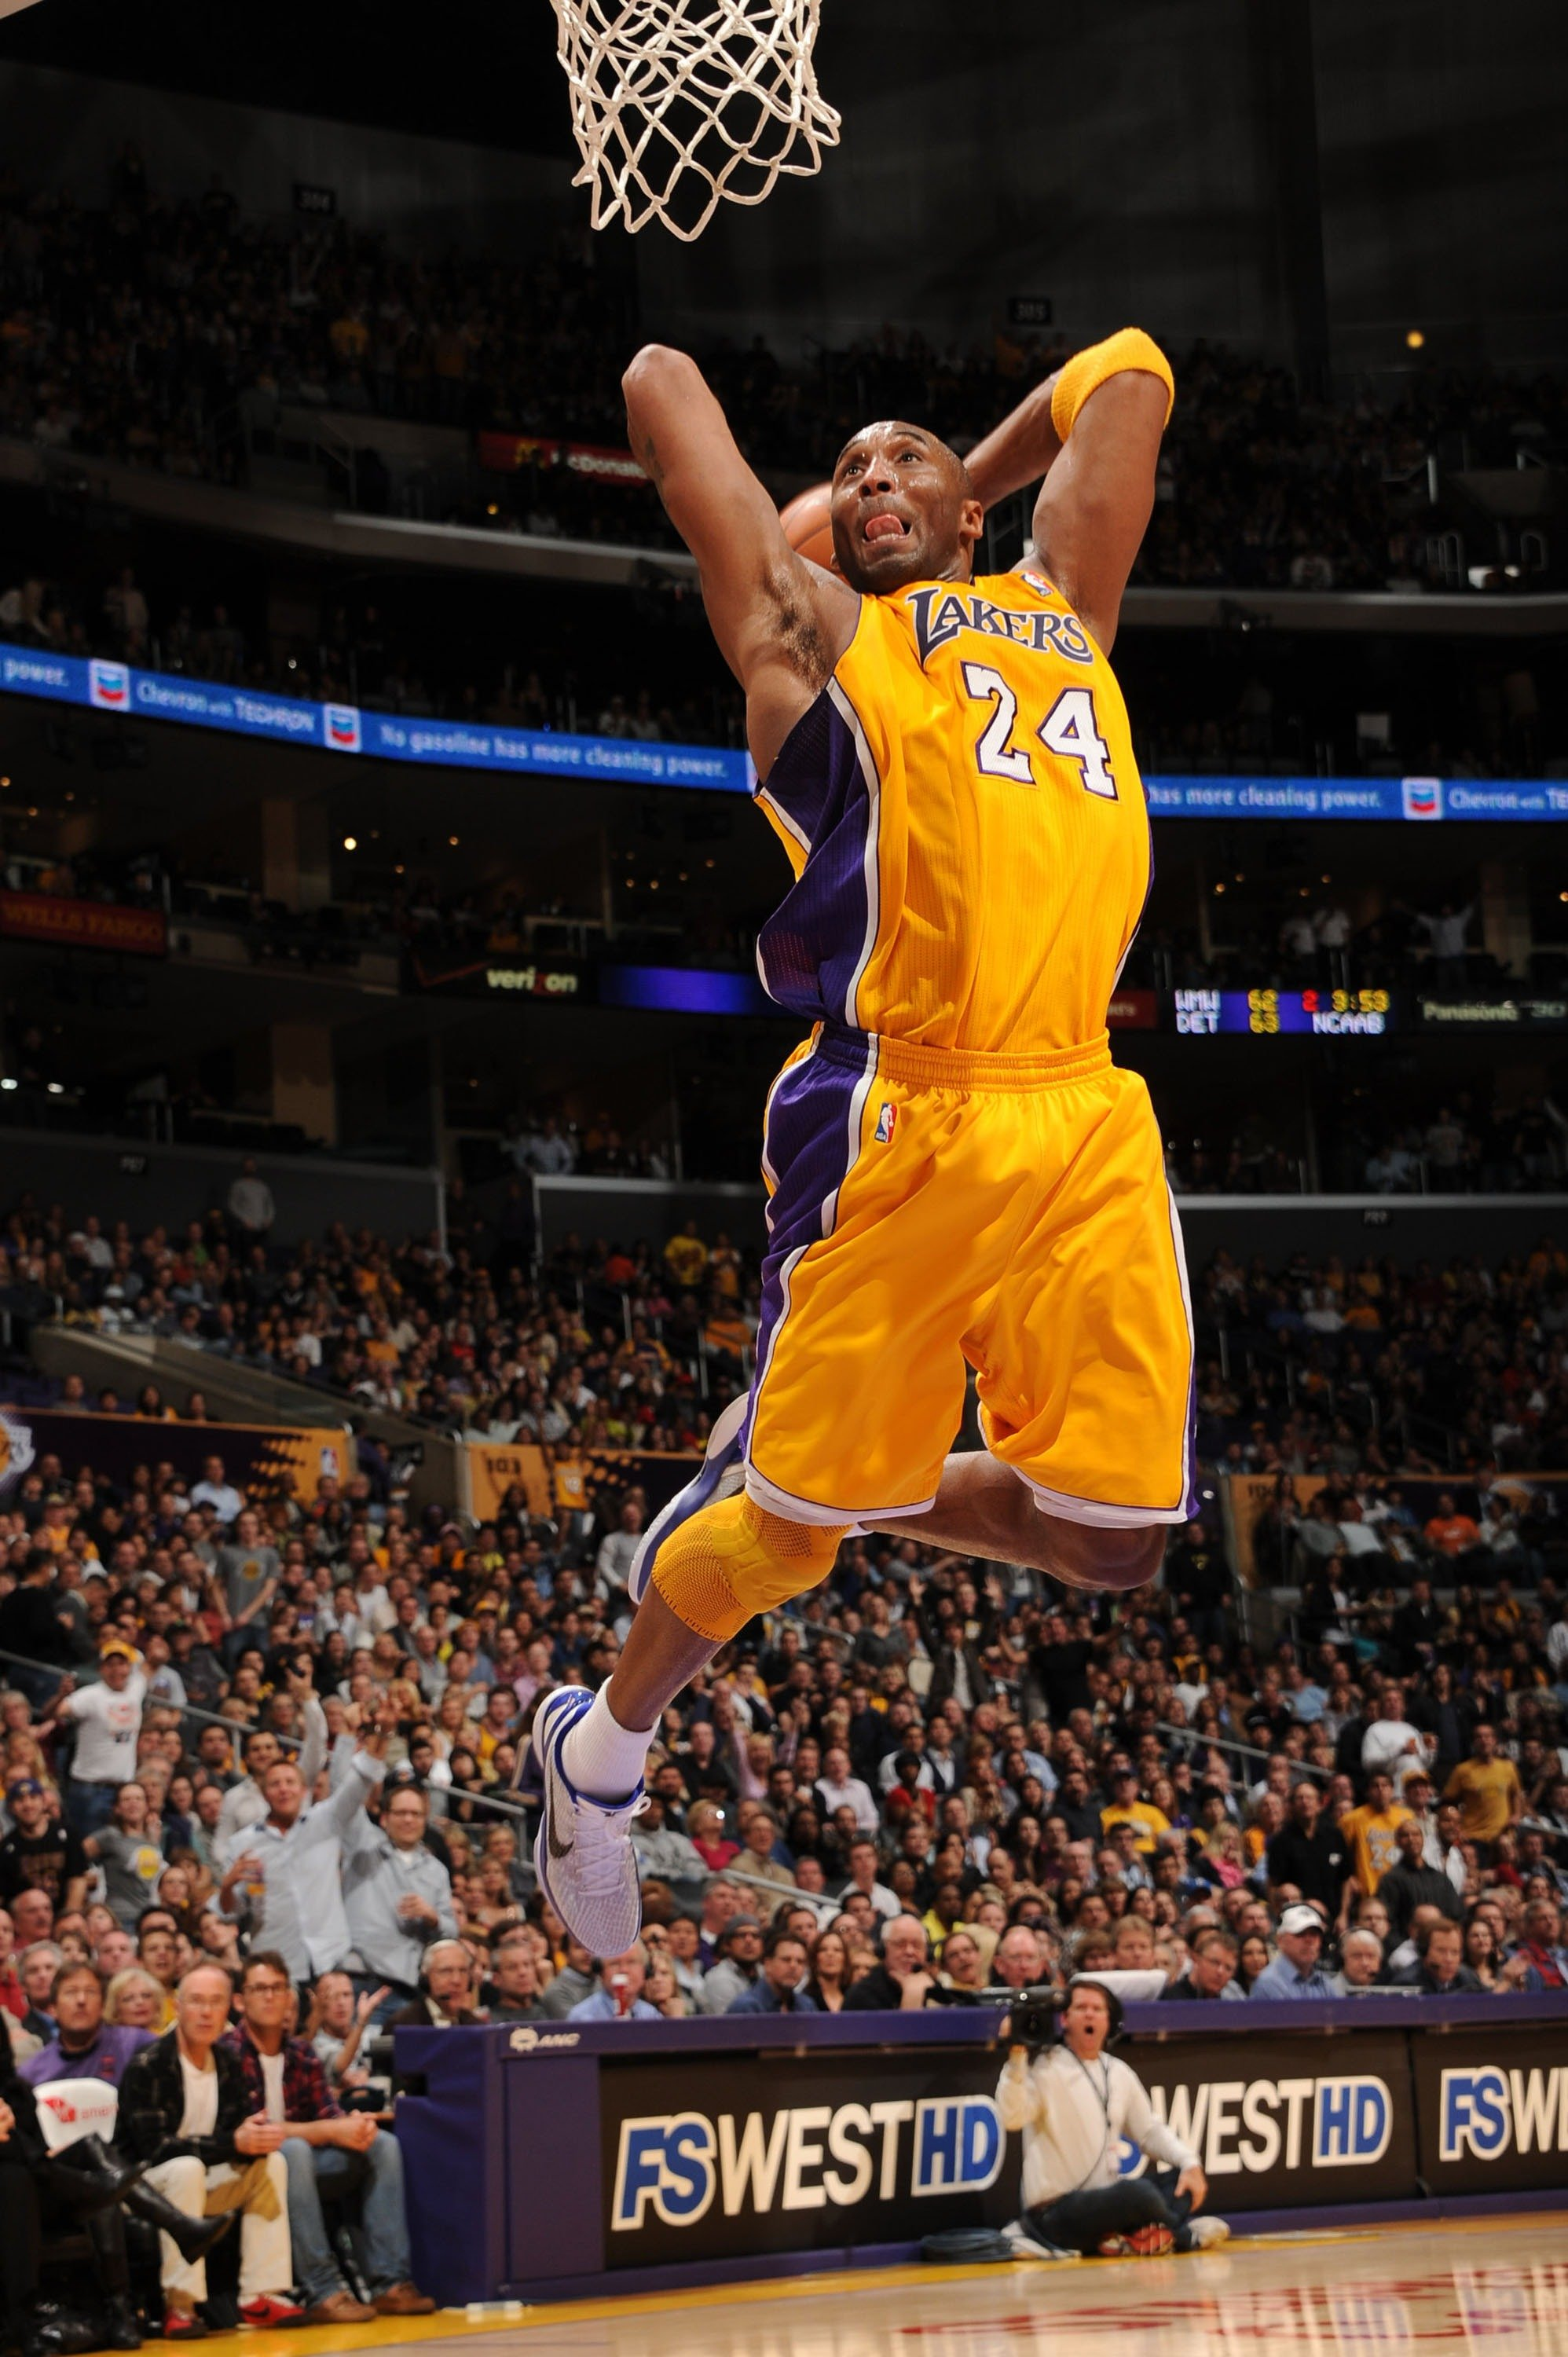 Kobe Bryant of the Los Angeles Lakers goes up for a dunk against the Sacramento Kings at Staples Center on January 28, 2011 in Los Angeles, California. | Source: Getty Images